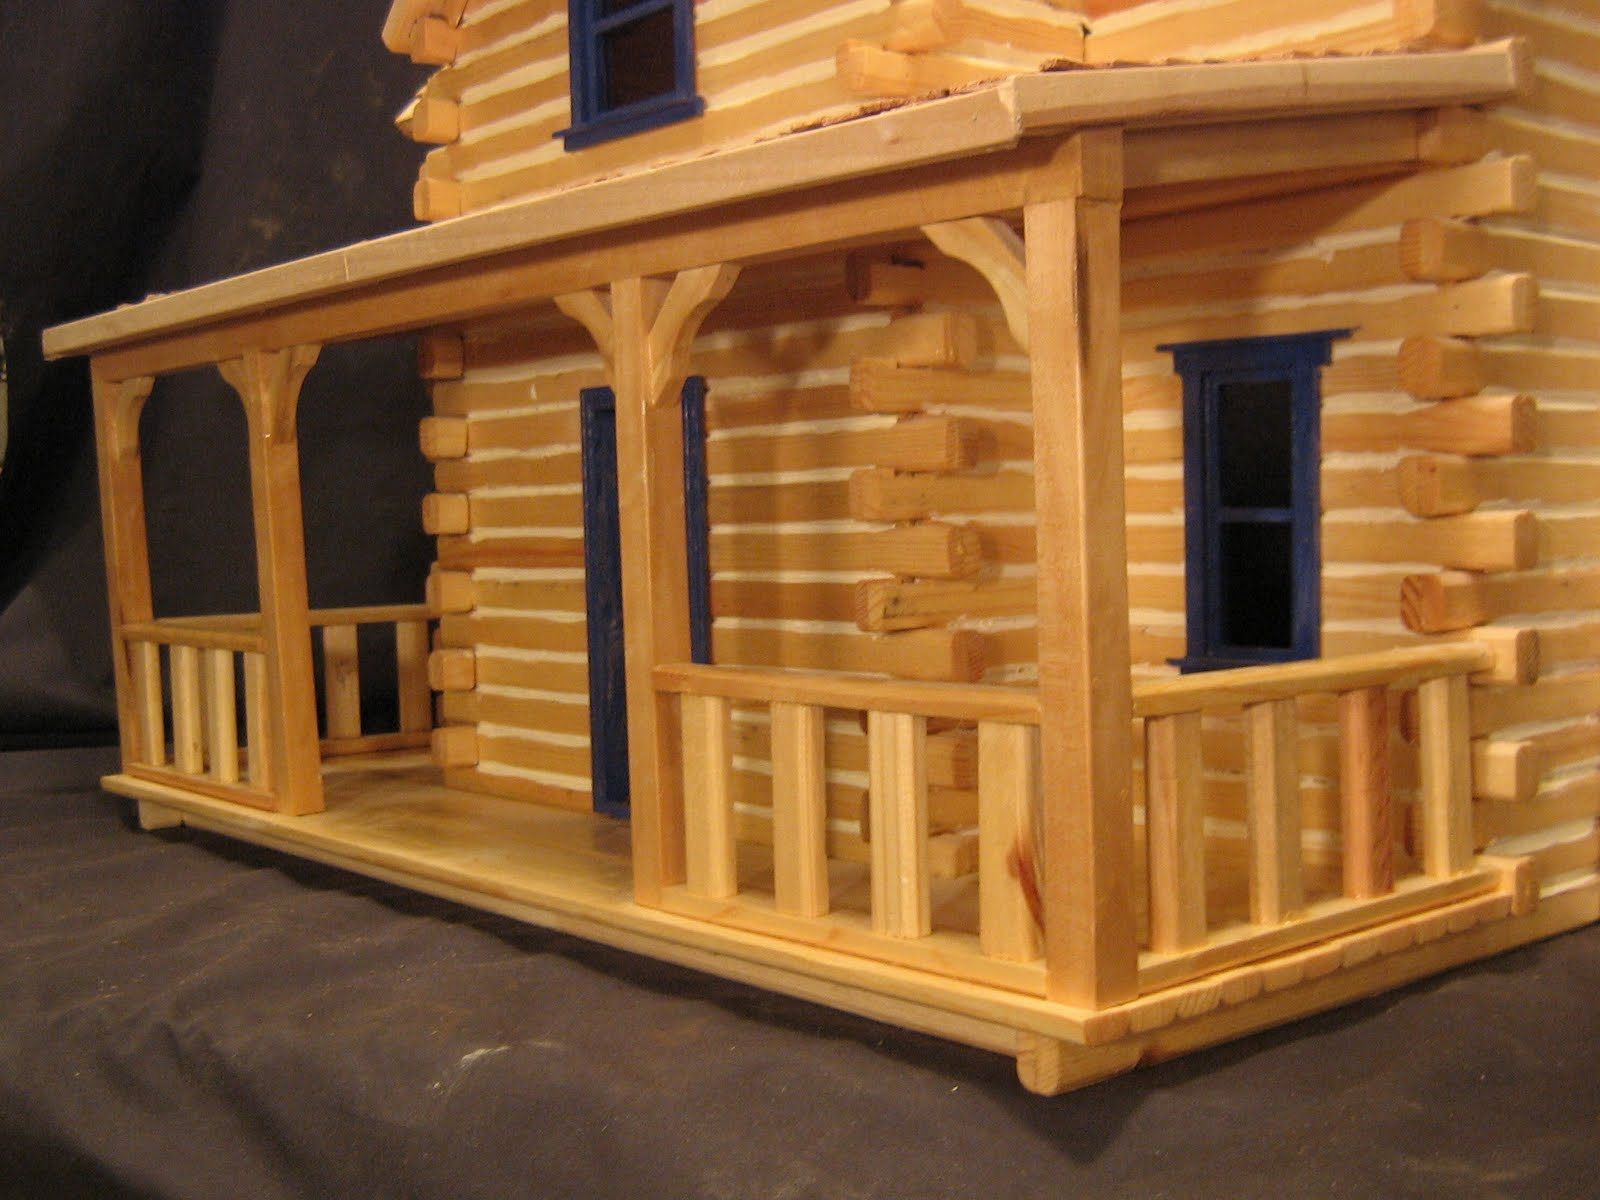 how to make a log cabin out of sticks